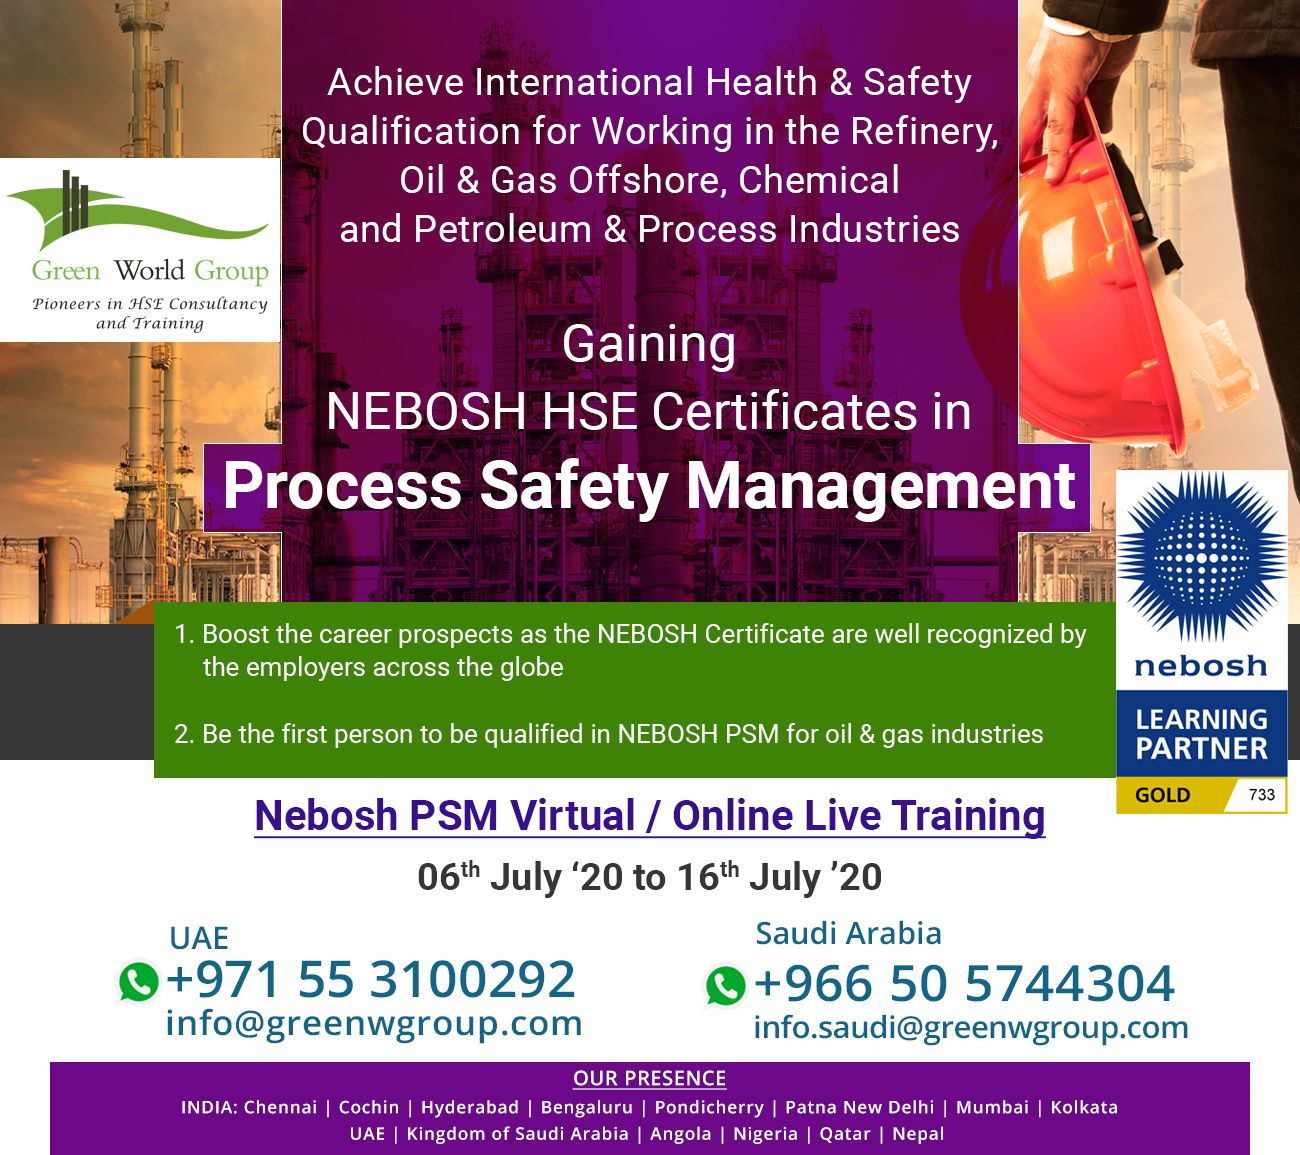 Join Nebosh PSM Live Training with GWG in